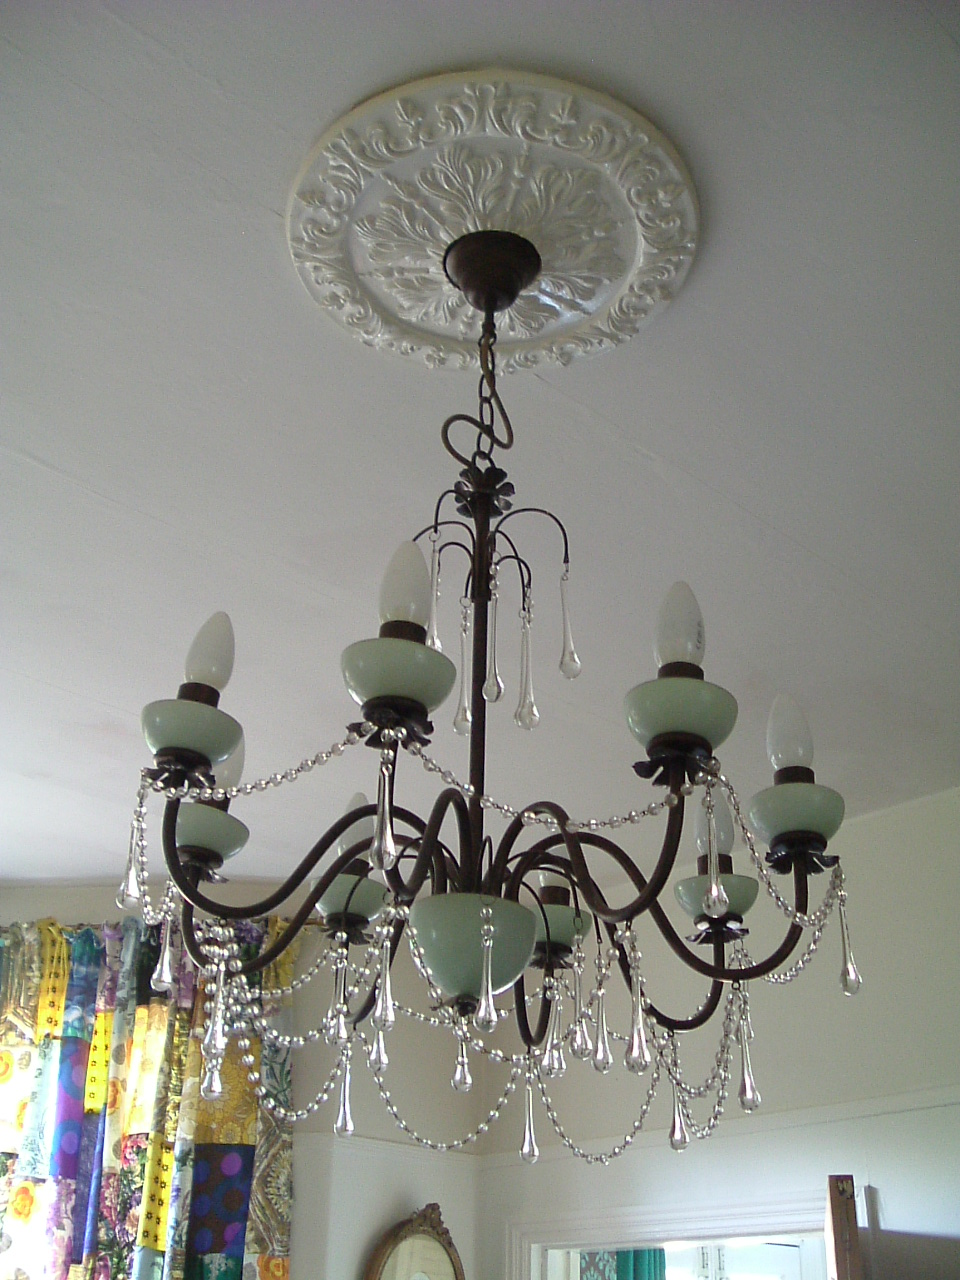 stained glass chandelier - Lighting - Shopping.com